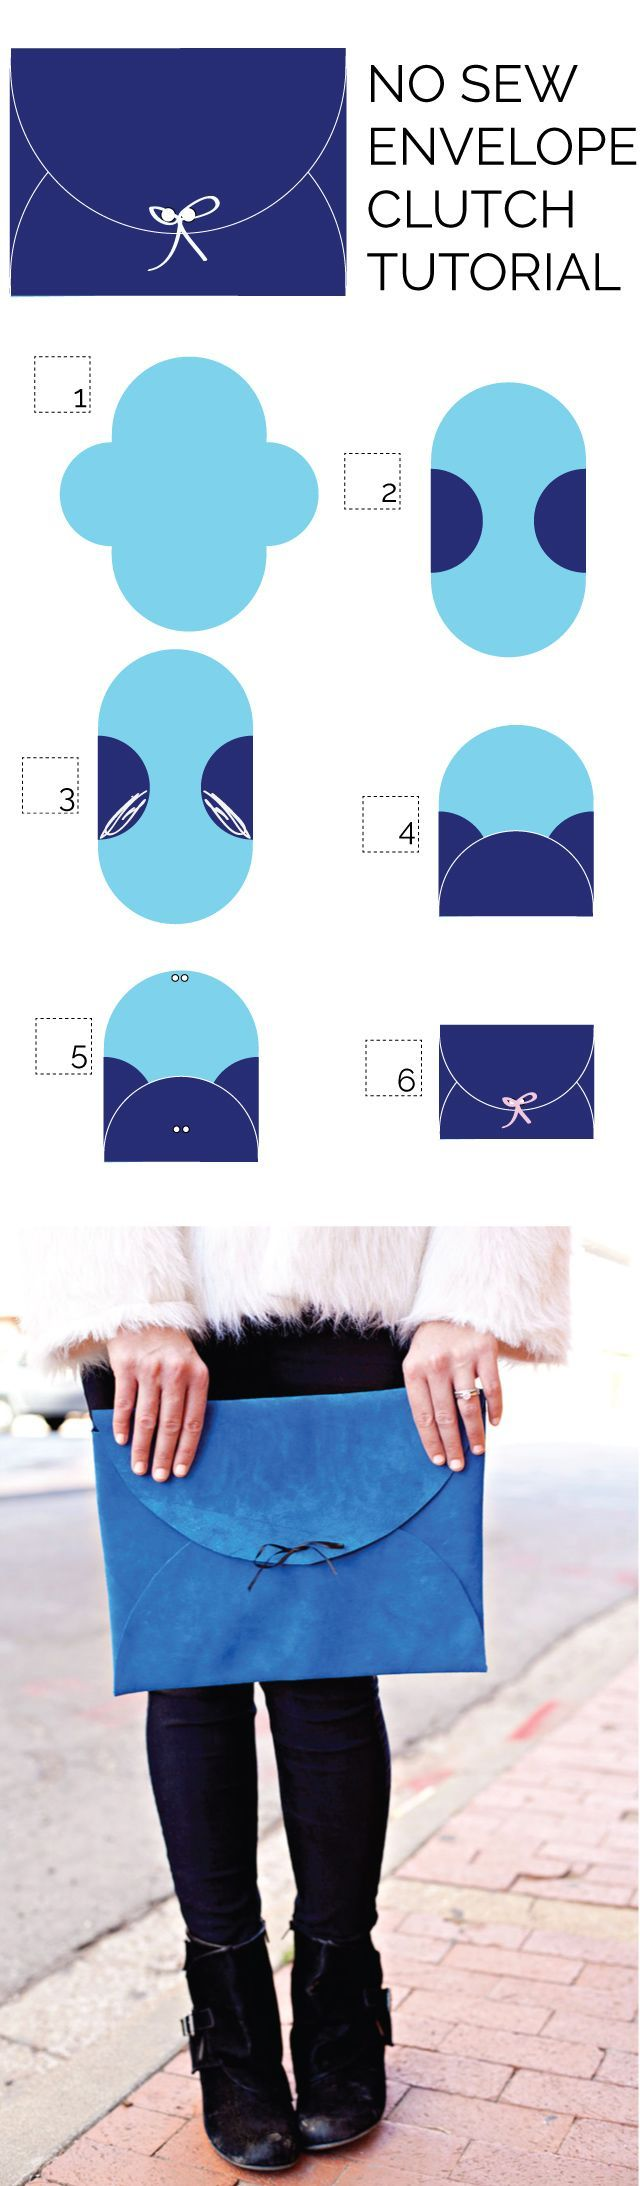 no sew leather clutch tutorial with template. Visit http://www.sewinlove.com.au/category/fashion/accessories-fashion/ for more DIY Bags and Purses ideas.